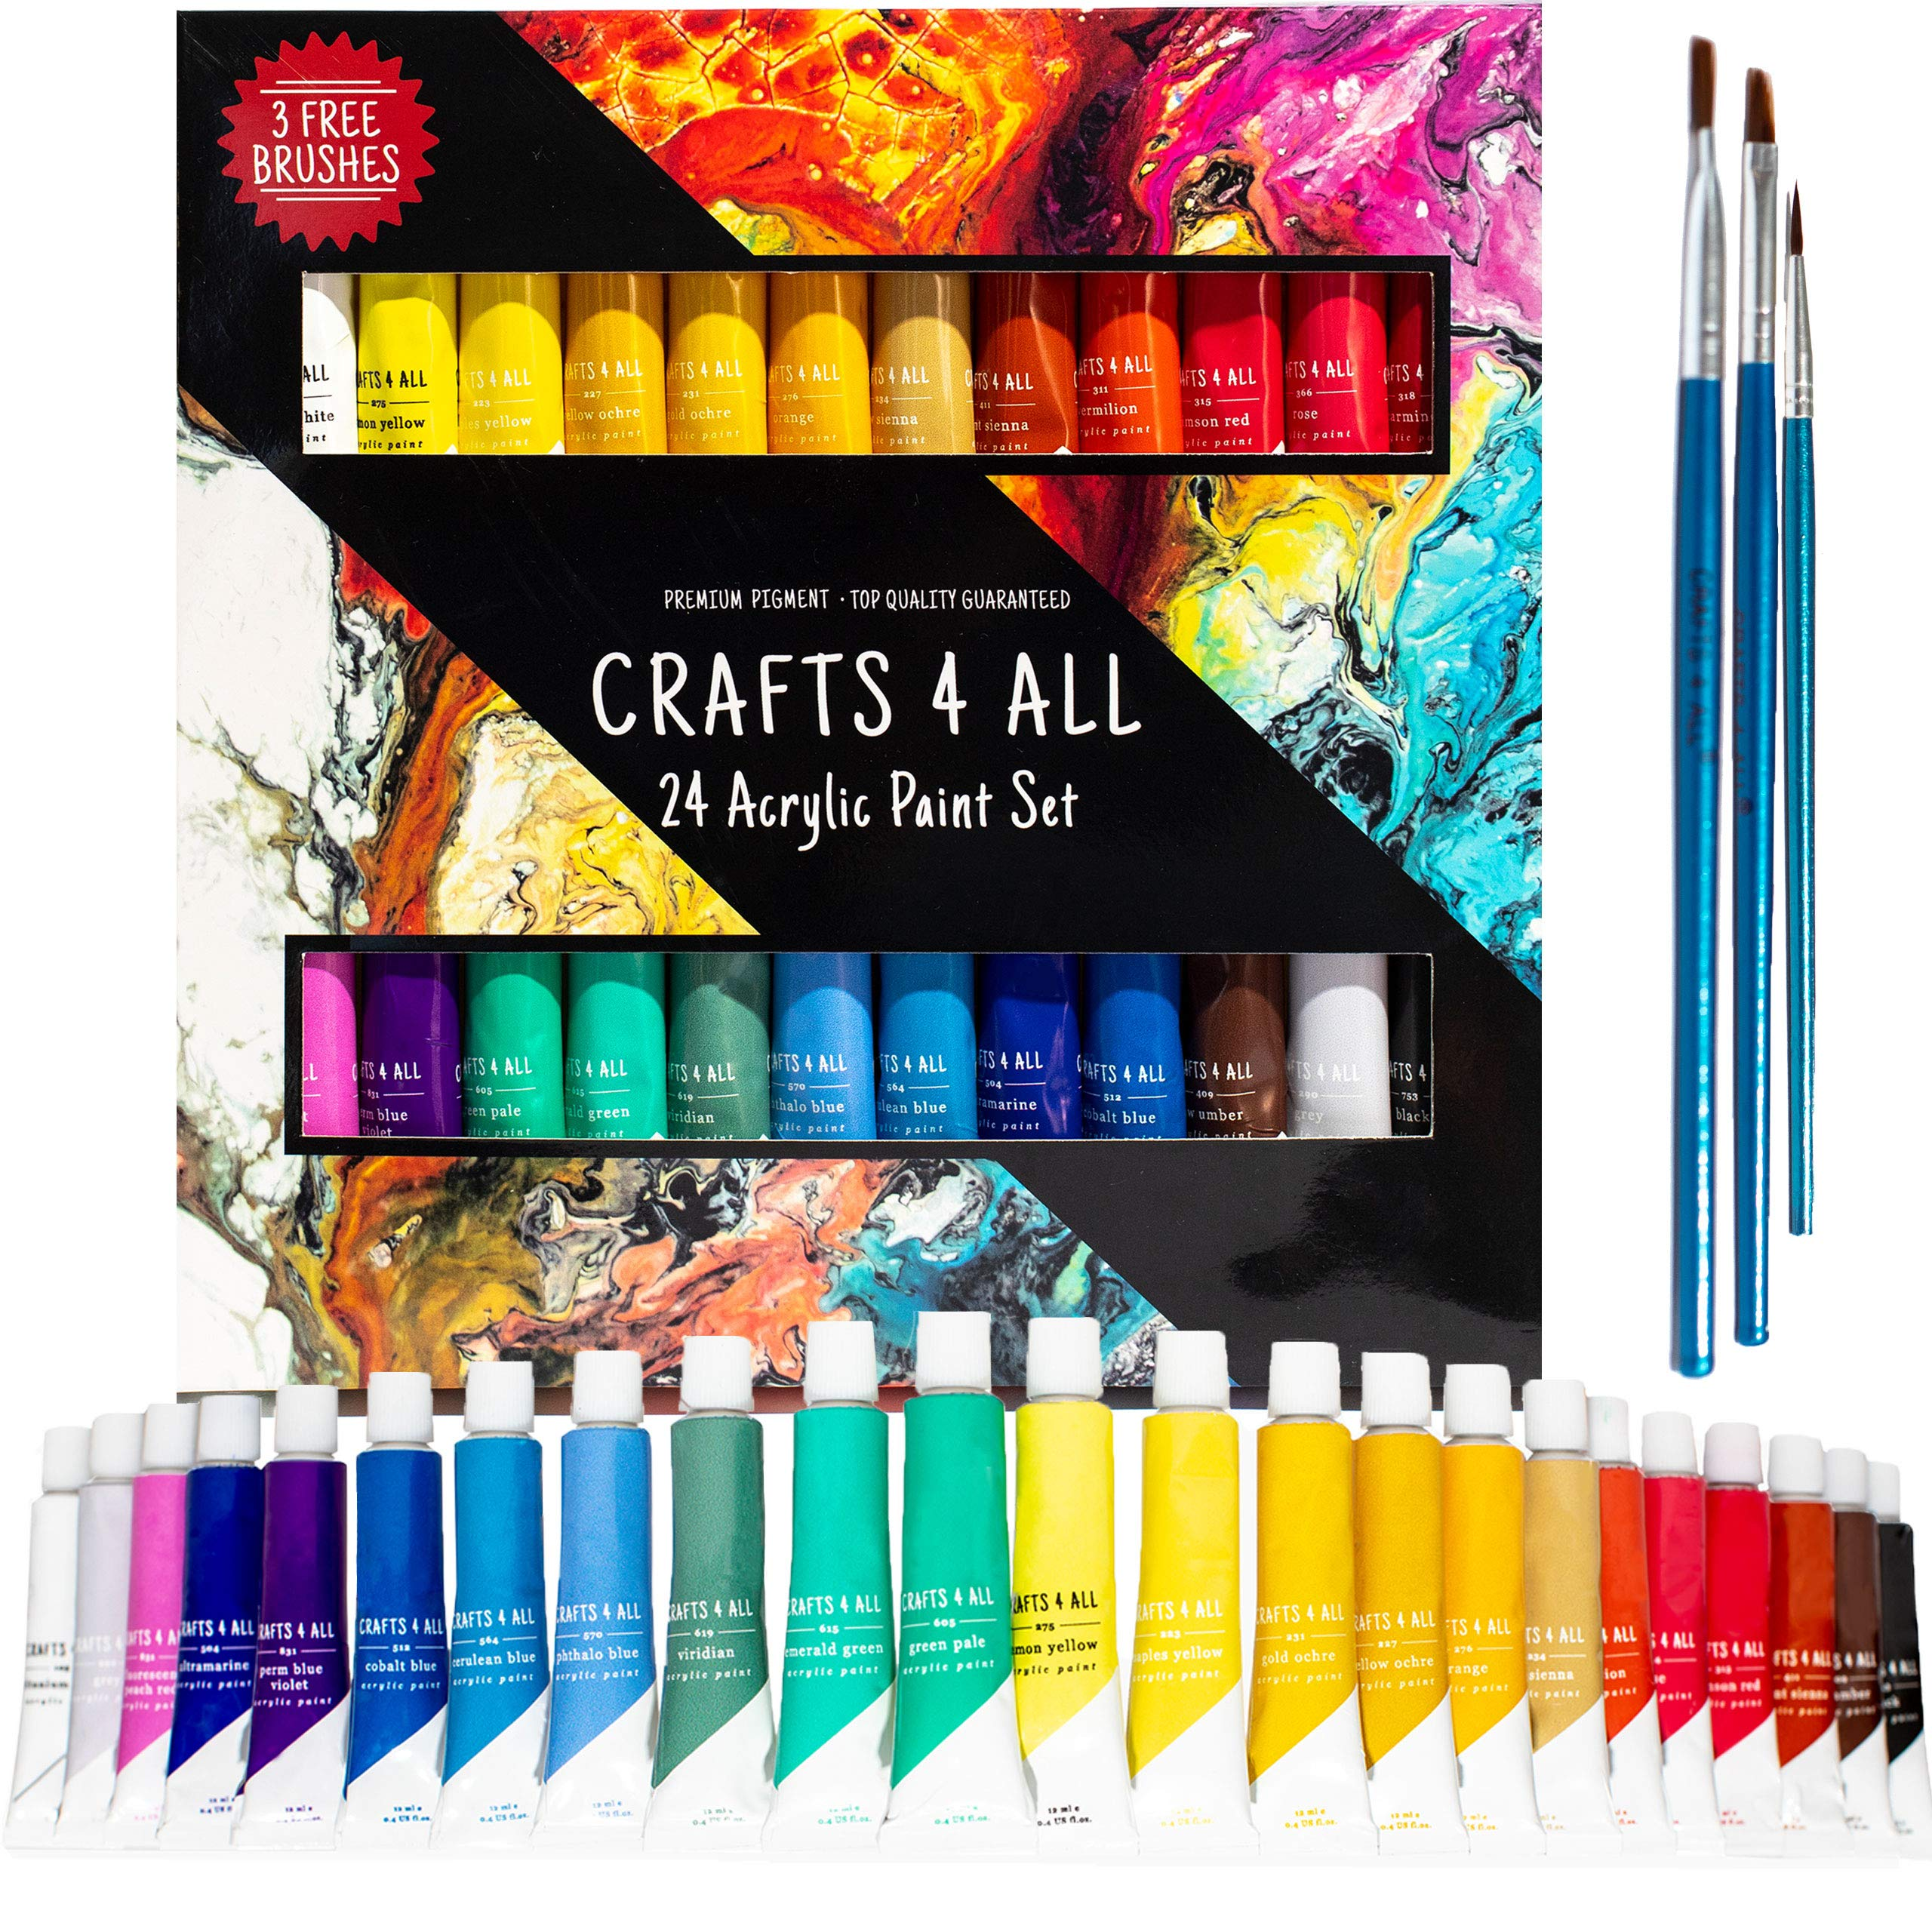 Acrylic Paint Set 24 Colors by Crafts 4 ALL Perfect for Canvas, Wood, Ceramic, Fabric. Non Toxic & Vibrant Colors. Rich Pigments Lasting Quality for Beginners, Students & Professional Artist by Crafts 4 ALL